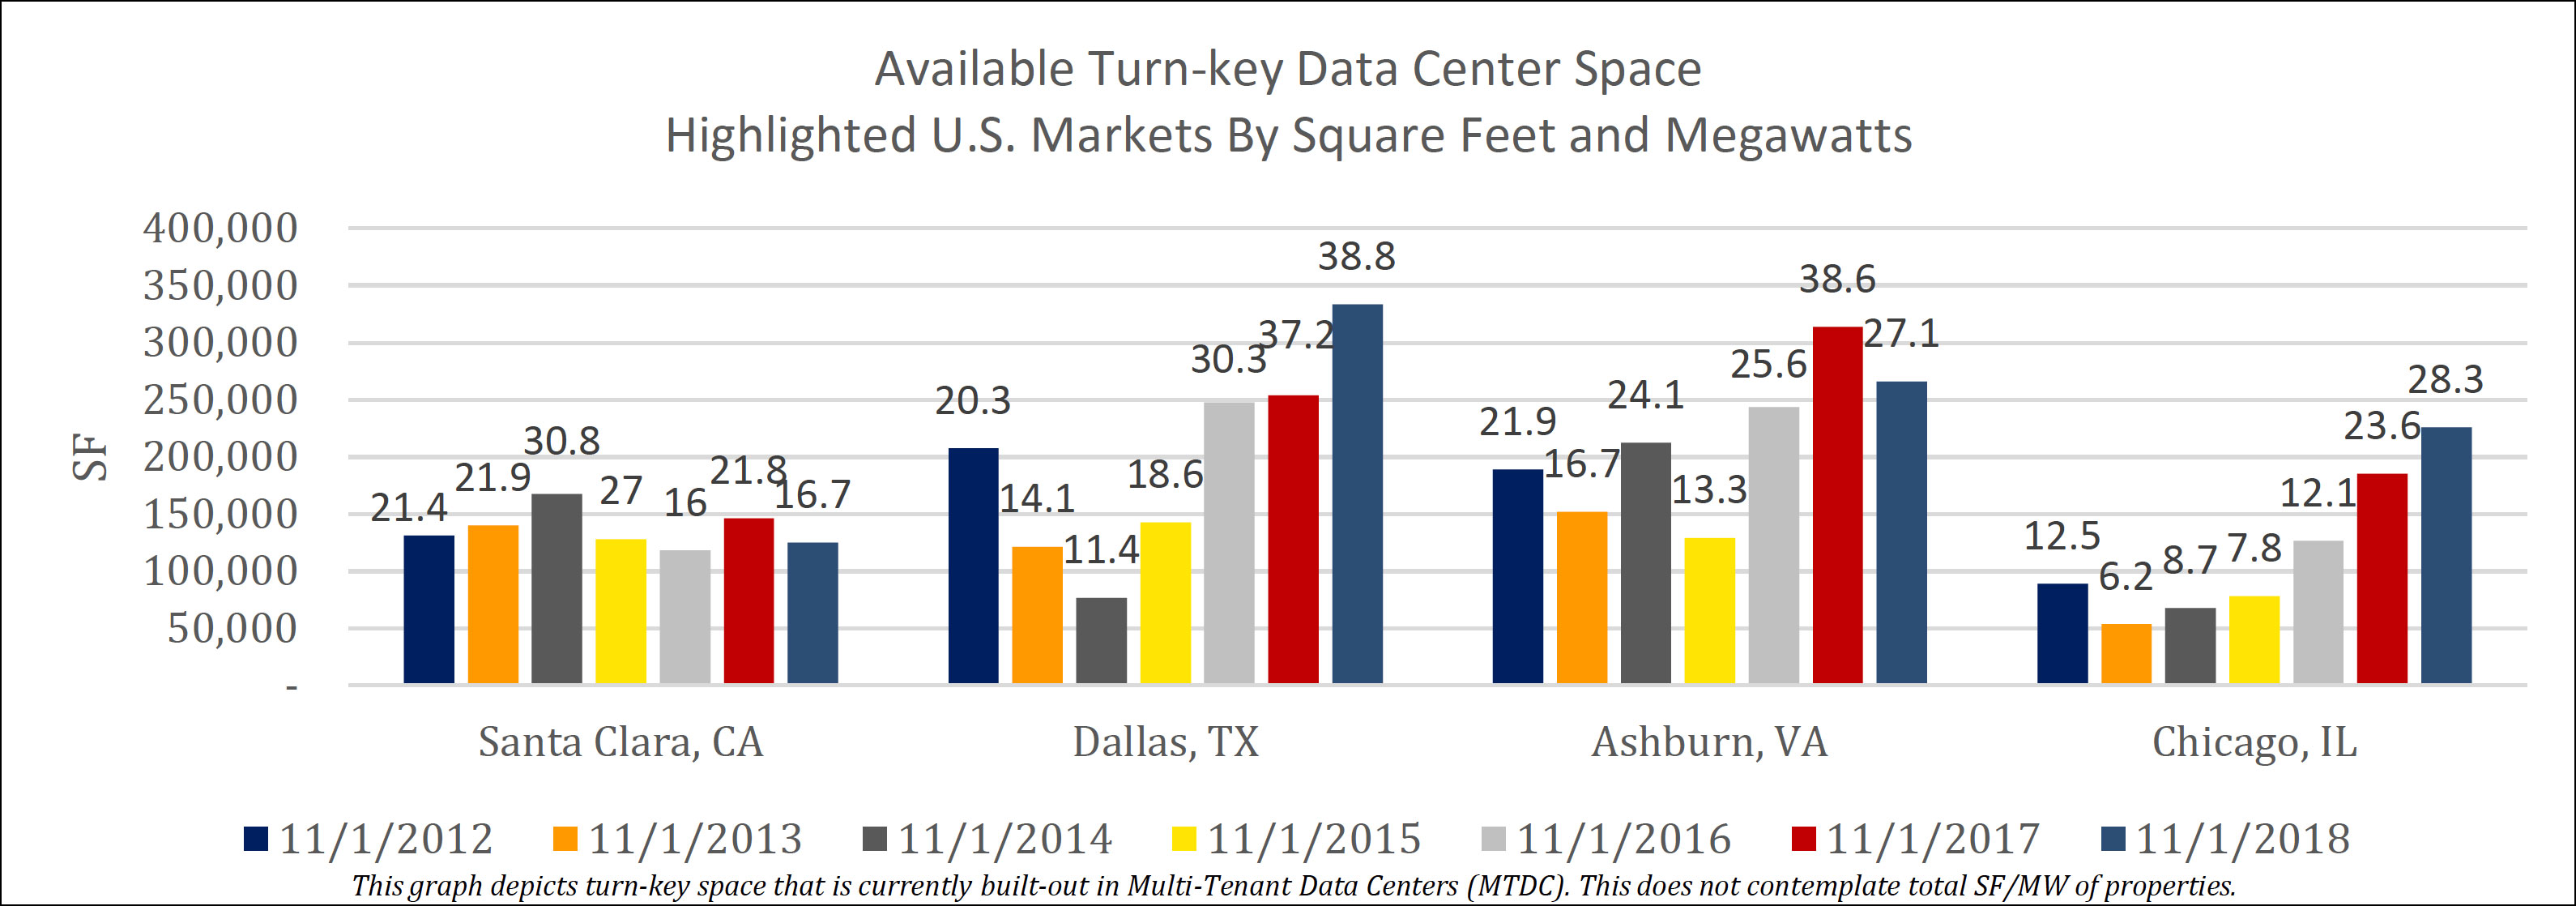 Available Turn-key Data Center Space